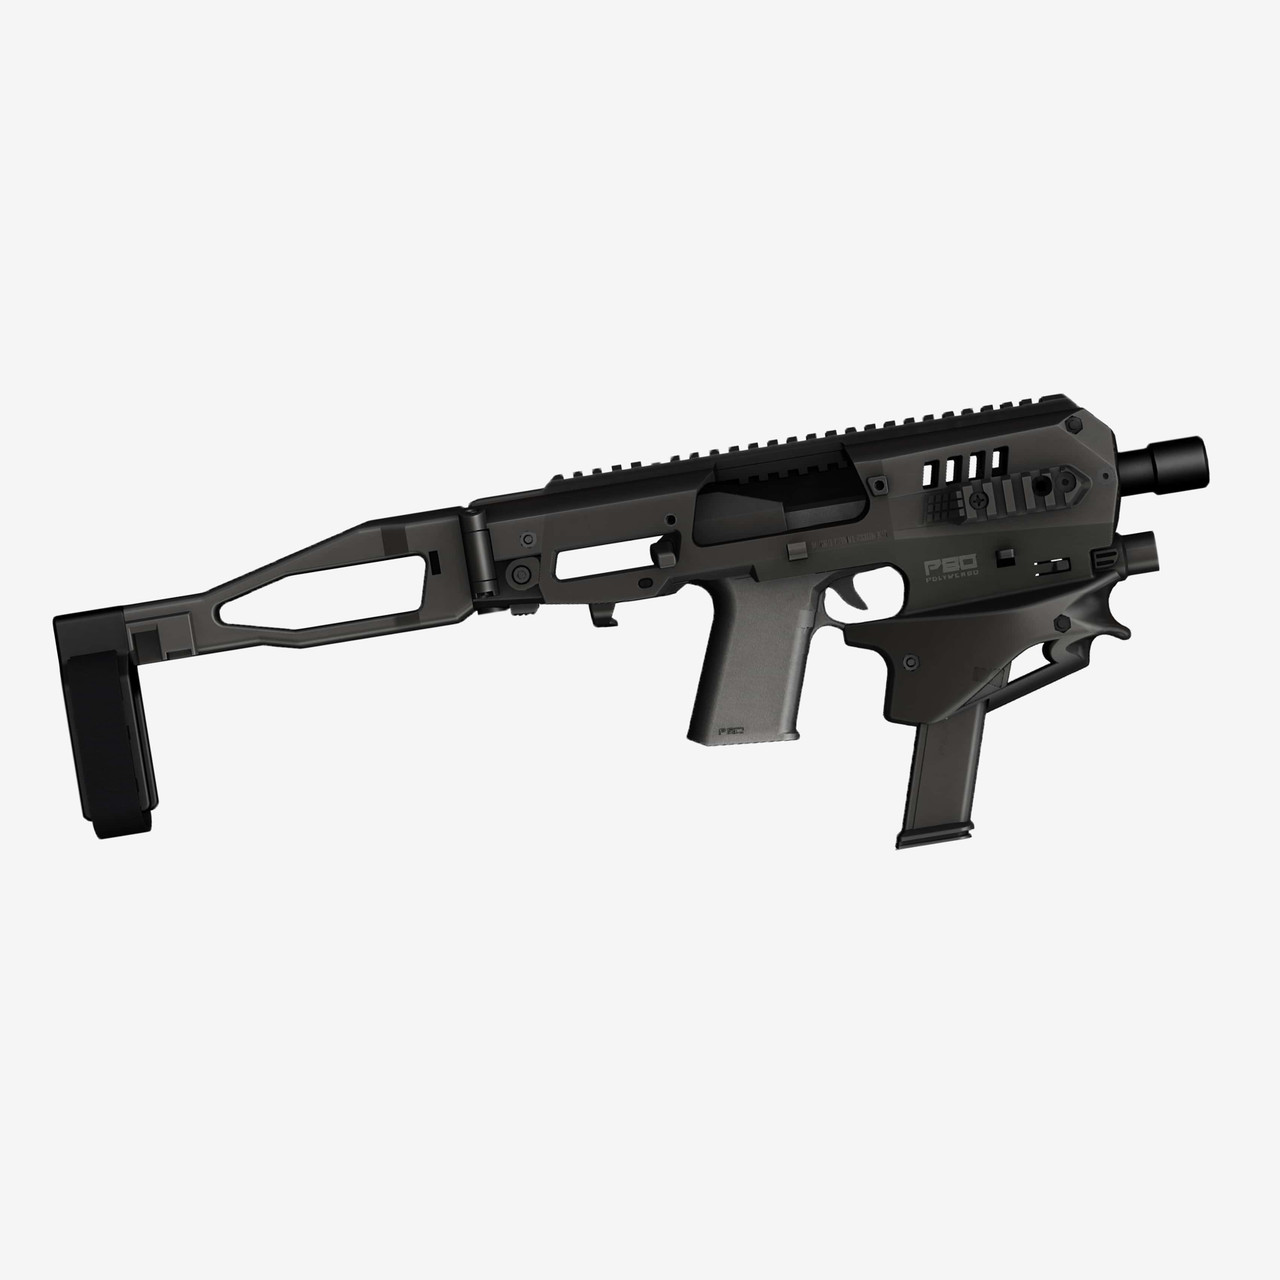 CAA MCK Micro Conversion Kit with Gen. 2 Stabilizer for Polymer80